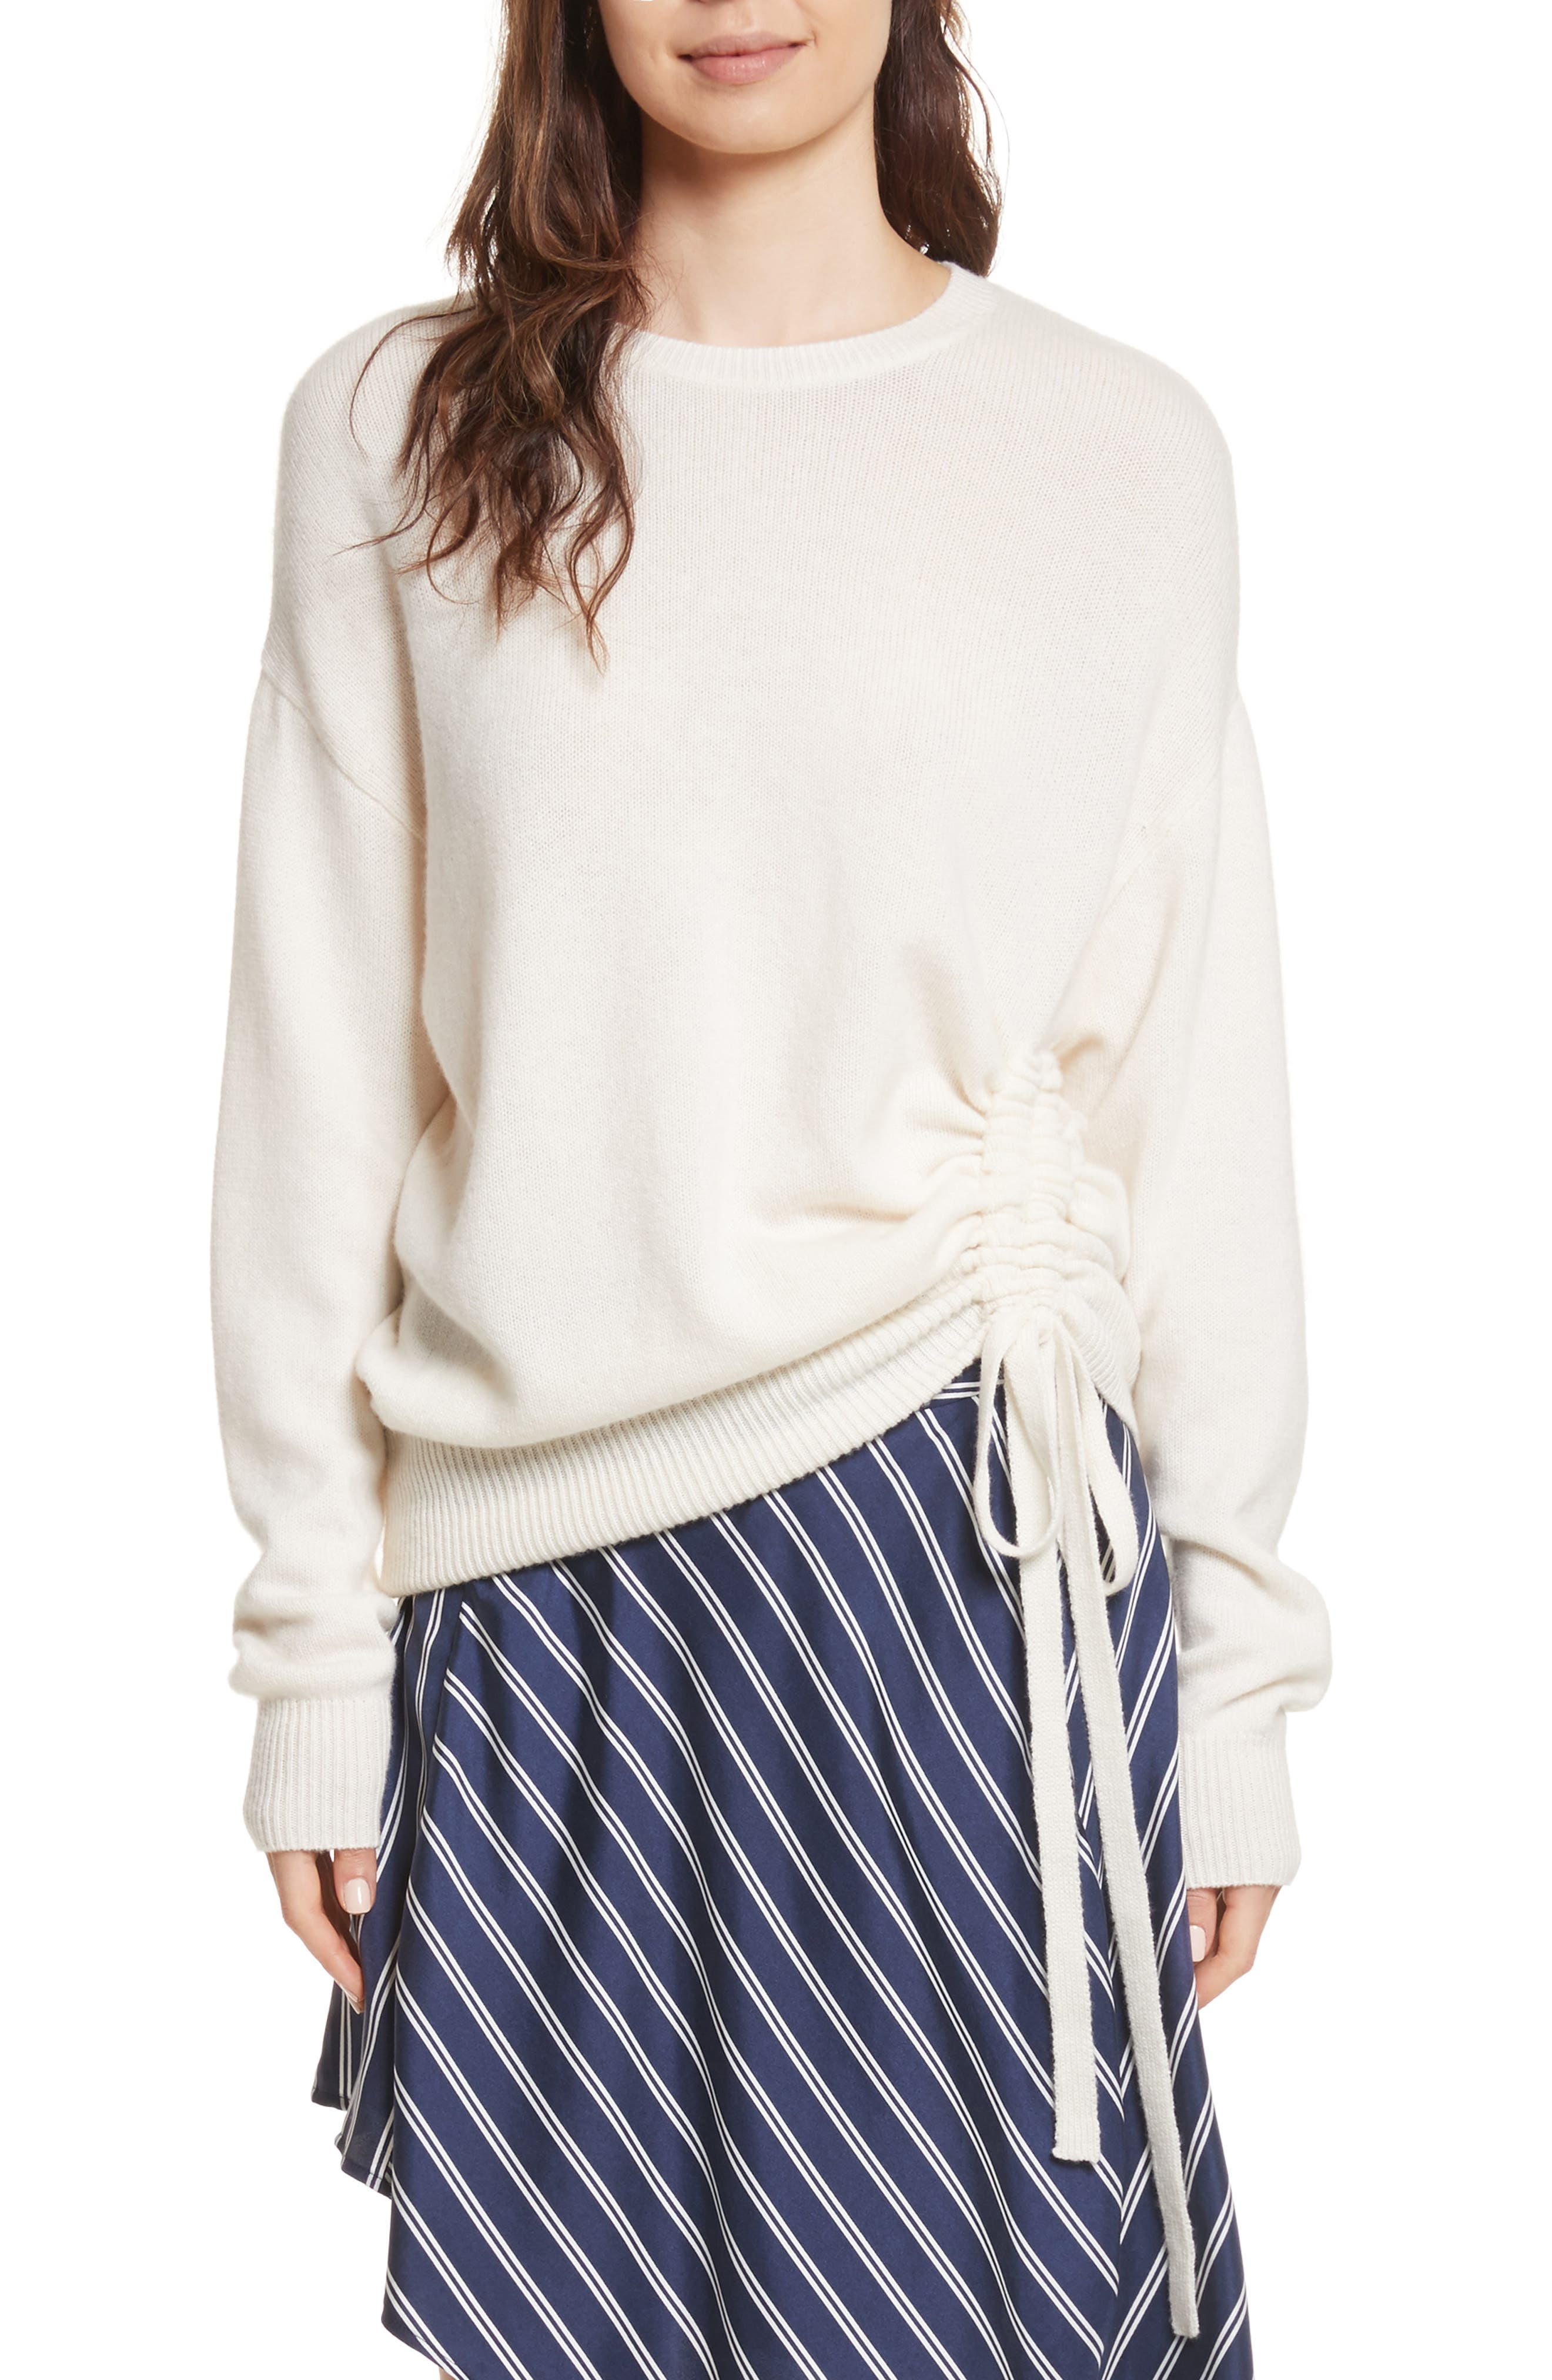 Iphis Wool & Cashmere Sweater,                         Main,                         color, Porcelain